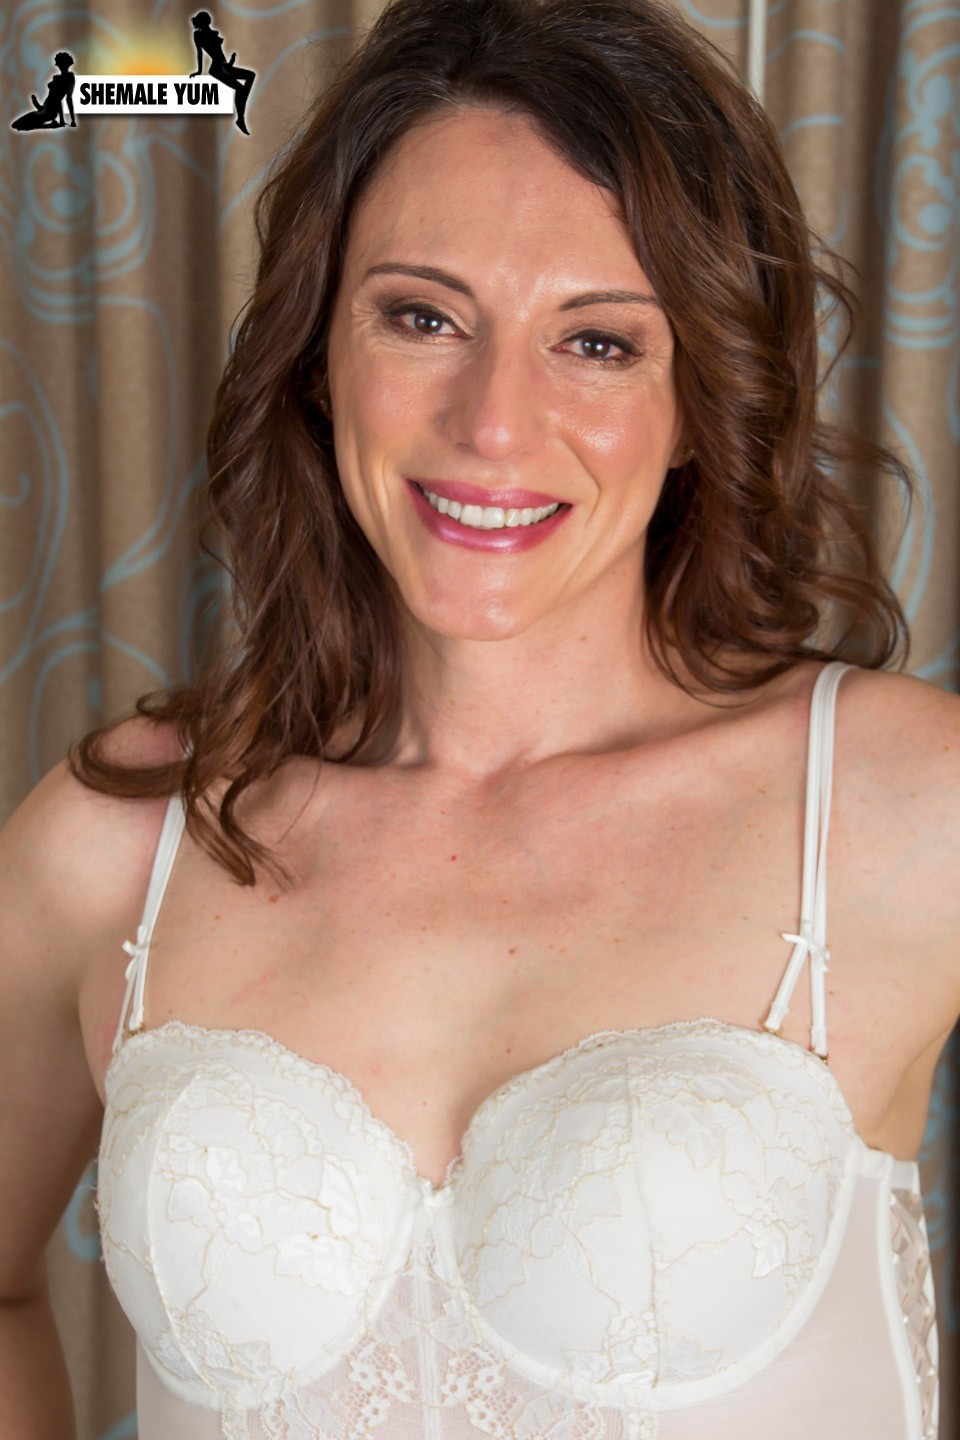 vivian grey posing in white corset and panties